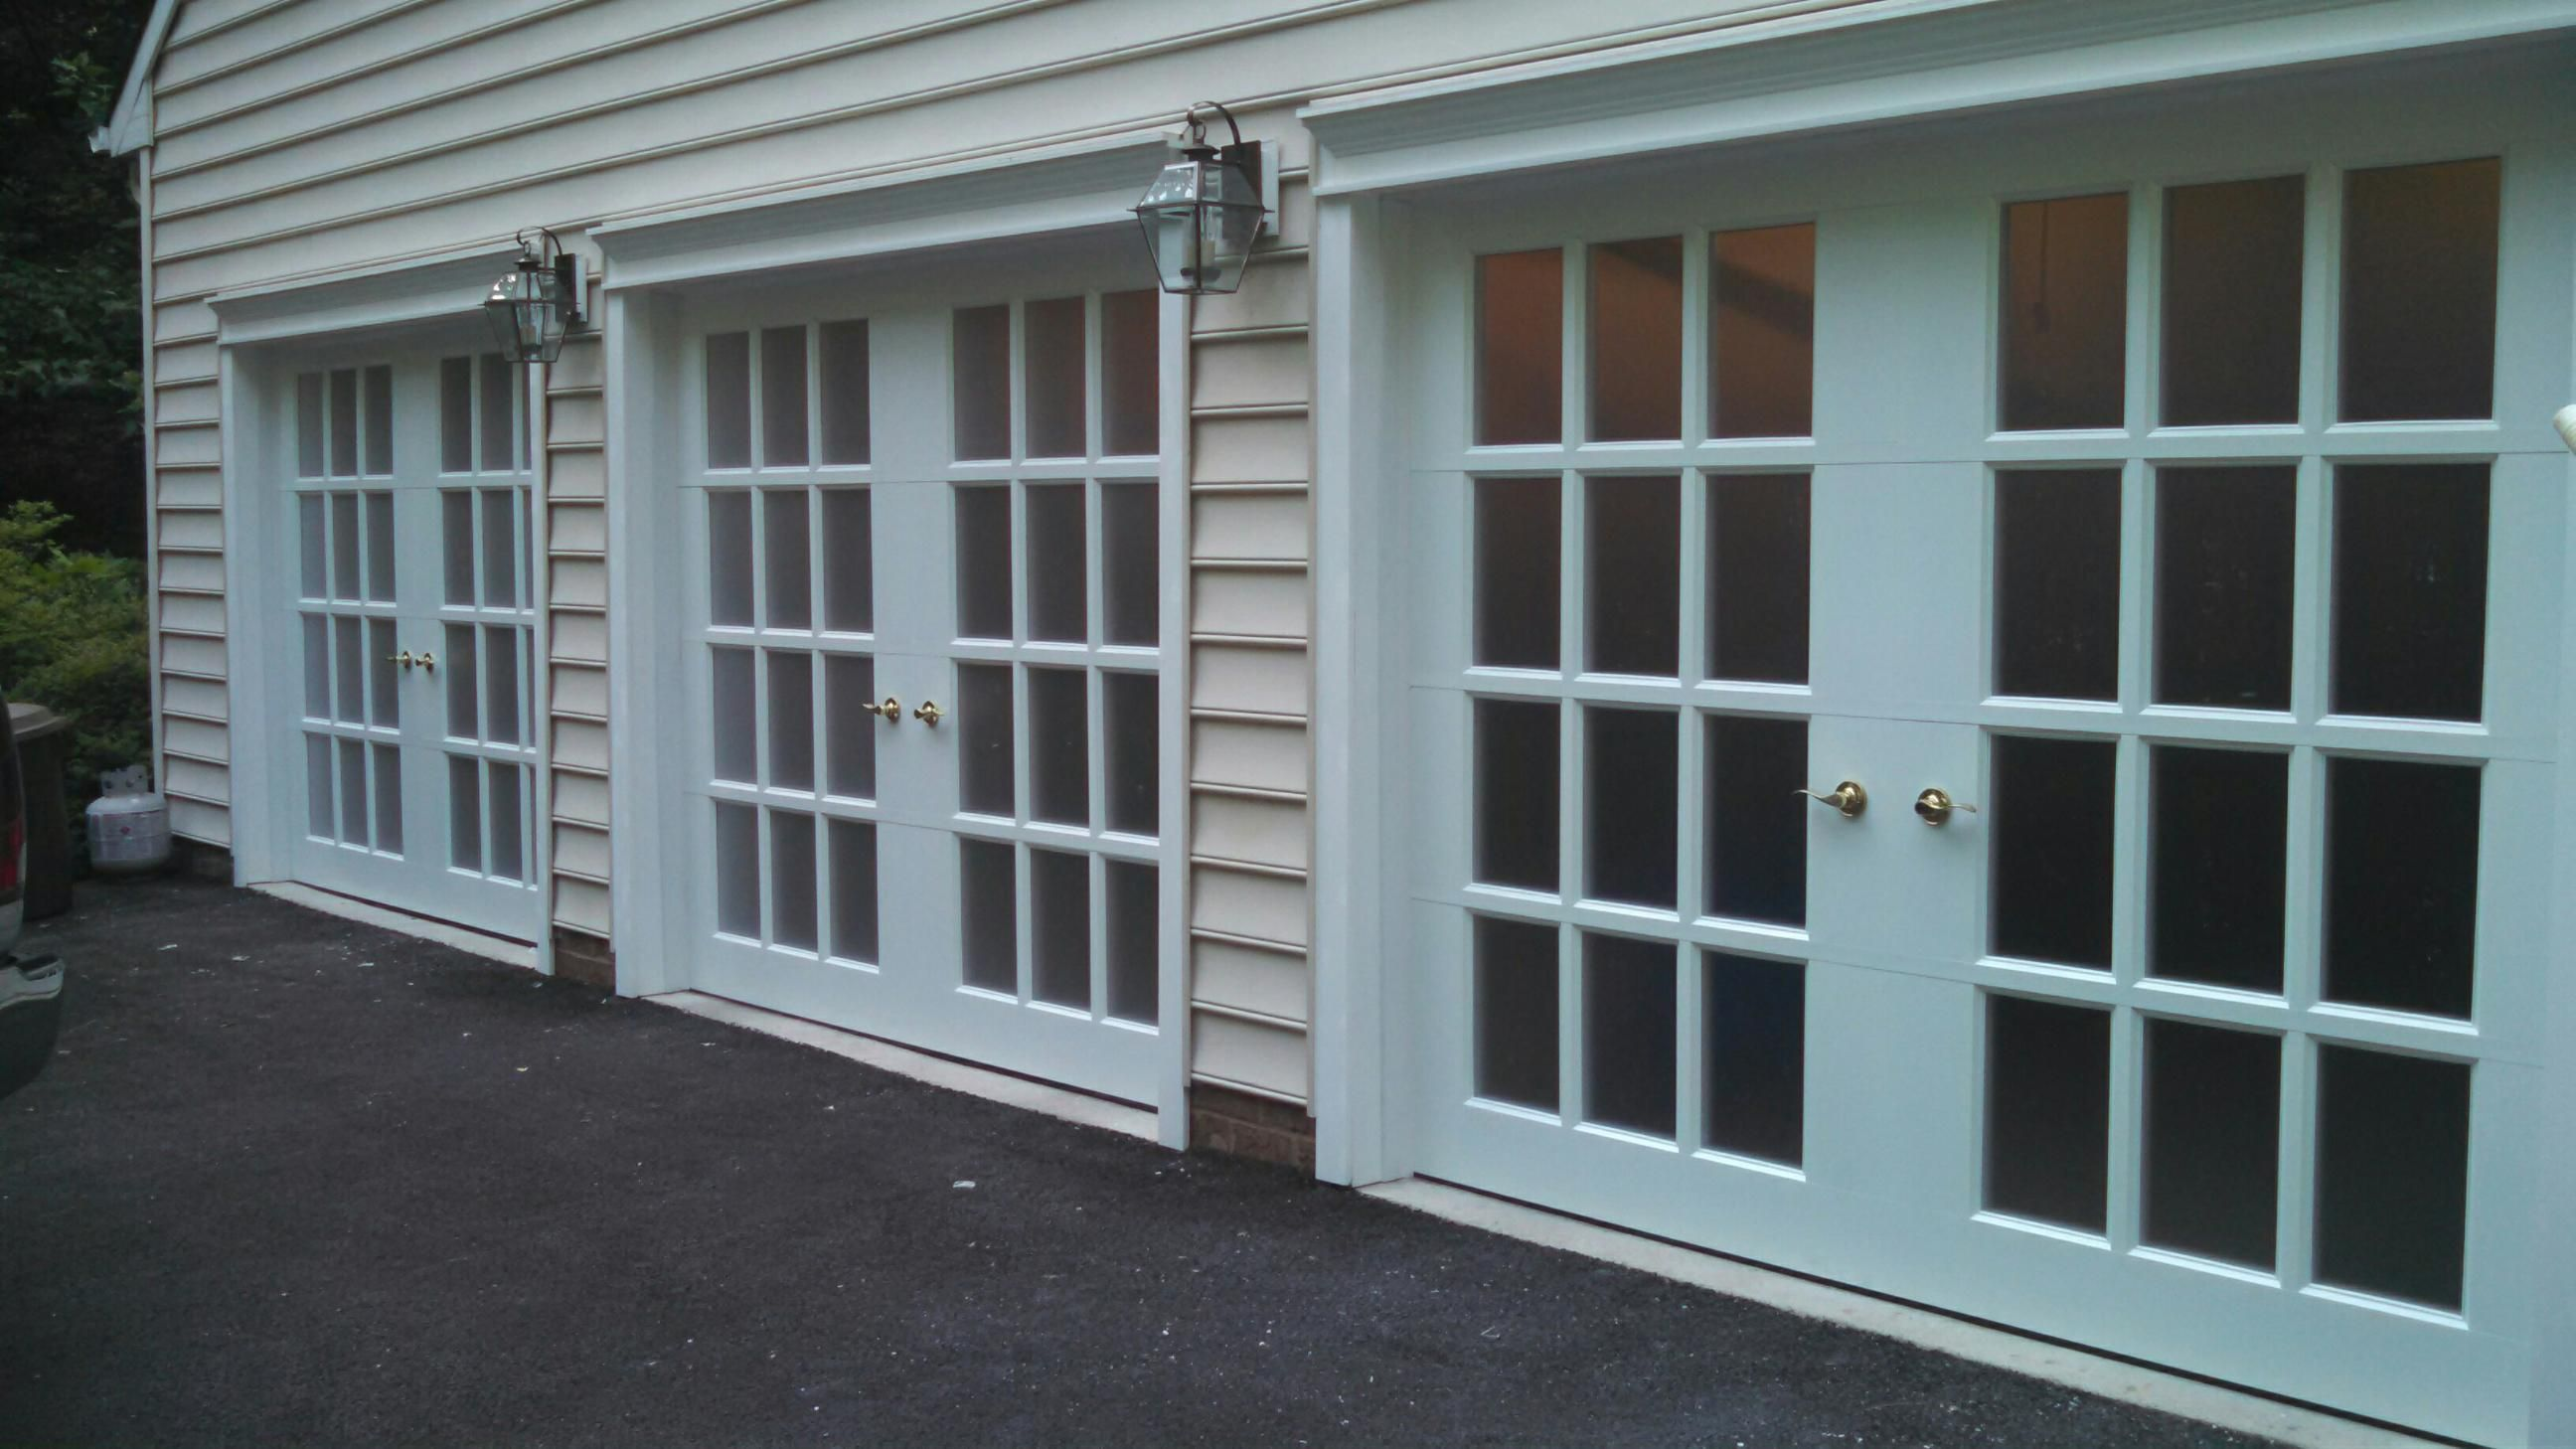 omaha vintage a anytime elegant cost door full doors repair size style garage of expensive new